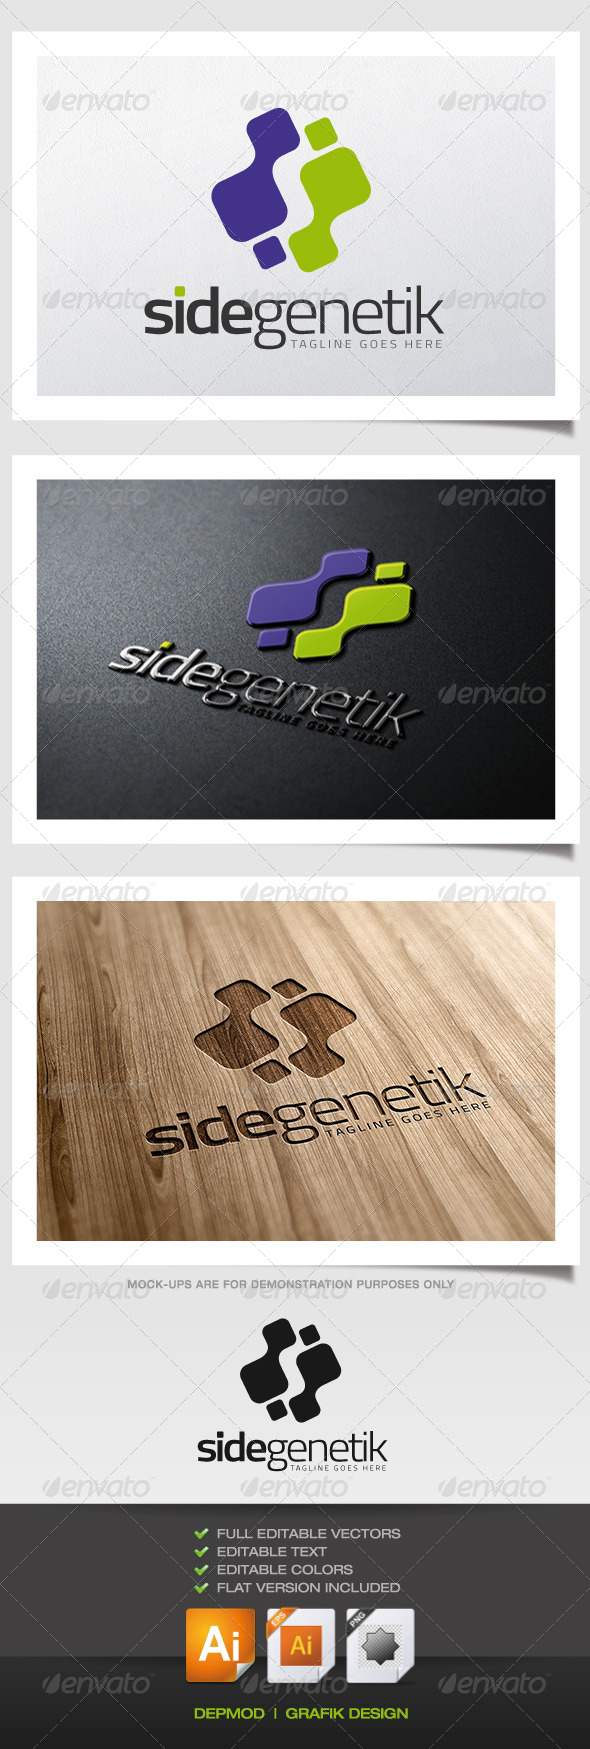 GraphicRiver Side Genetik Logo 5702915